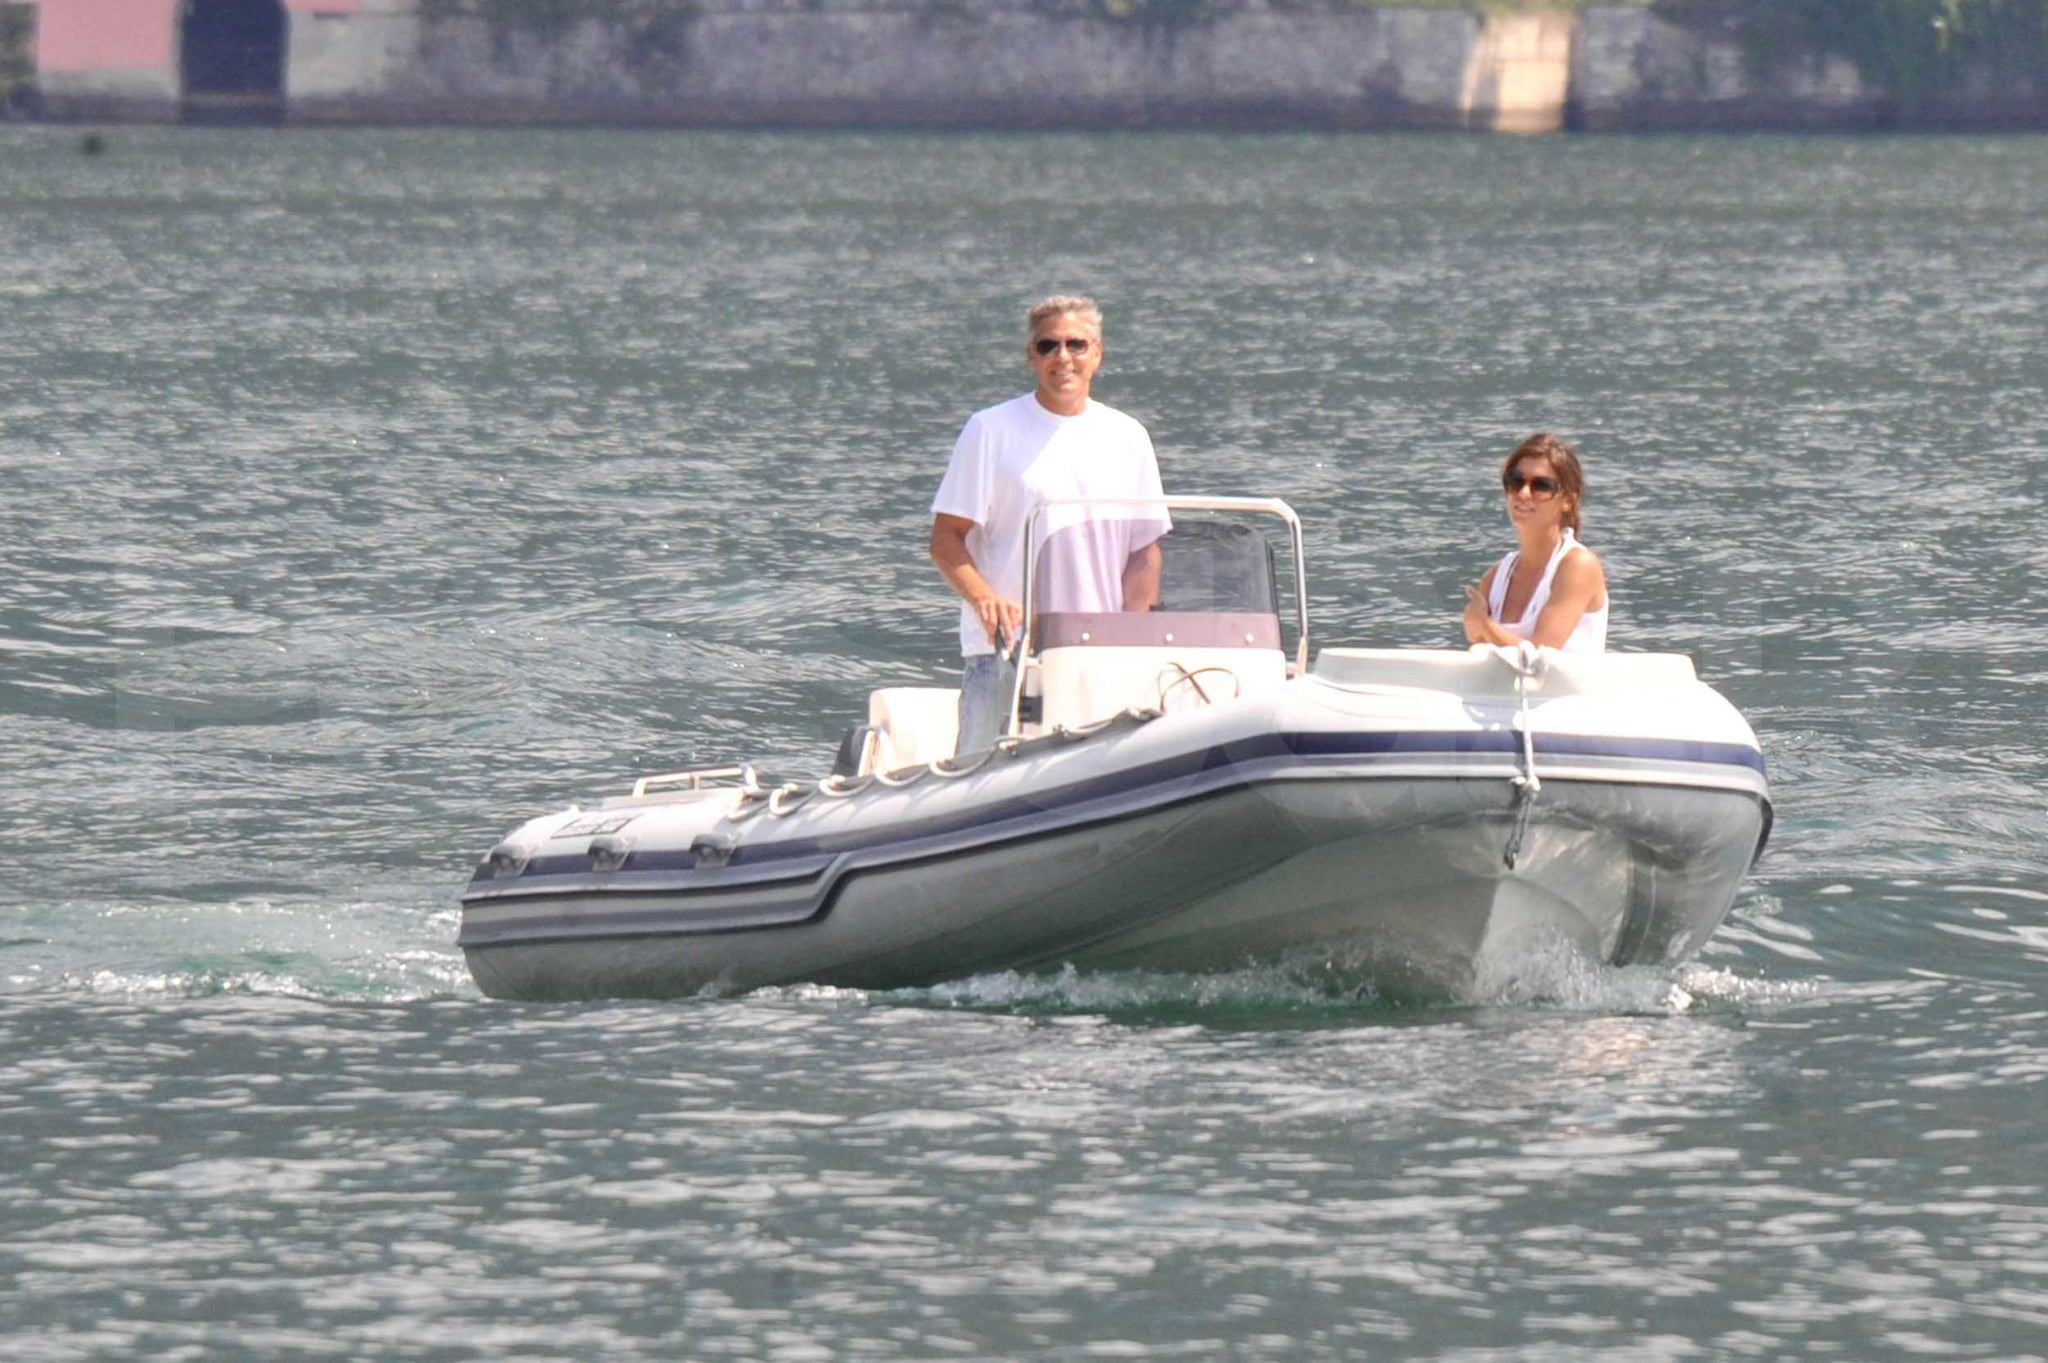 10 Sexy Movie Couplings That Melted The Screen Photos-George-Clooney-Elisabetta-Canalis-Boat-Lake-Como